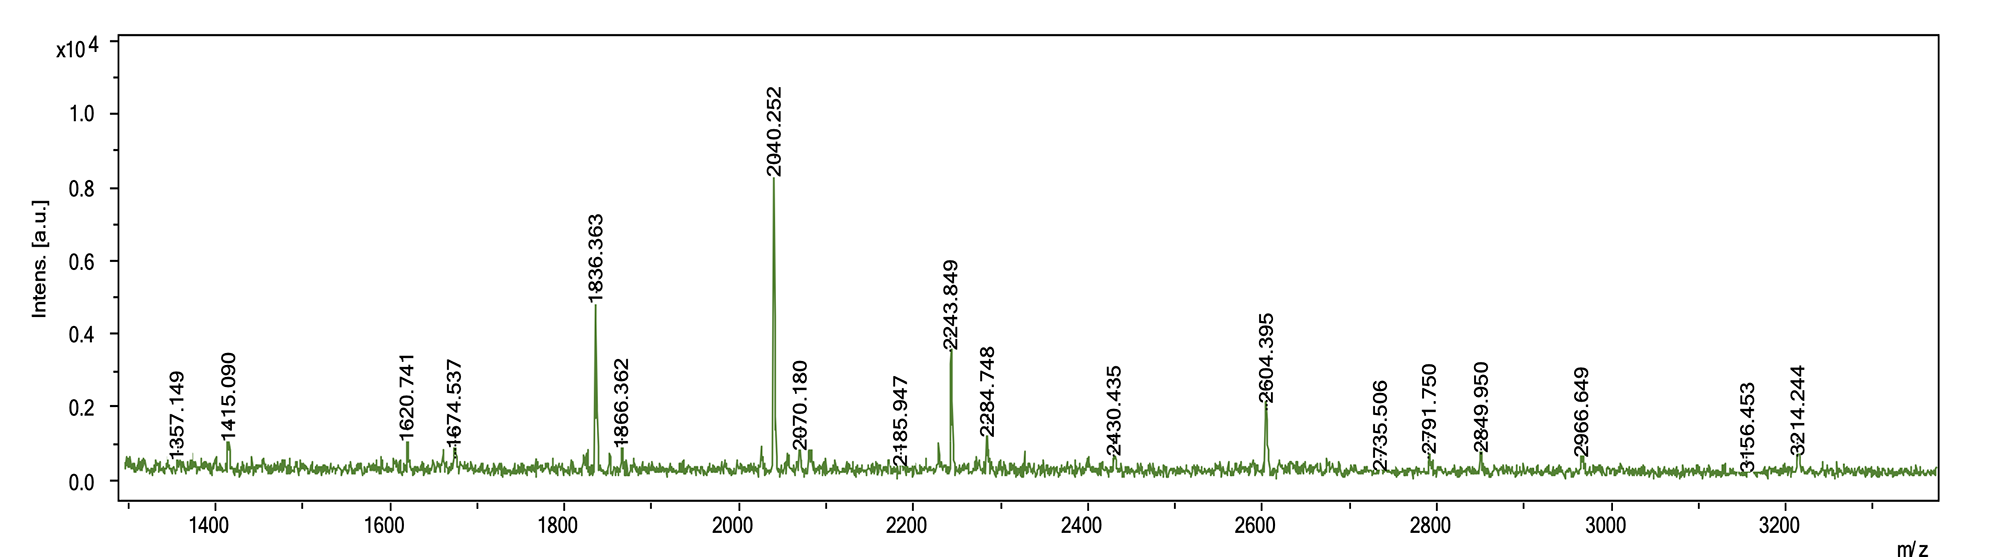 MALDI-TOF-MS glycan analysis services image